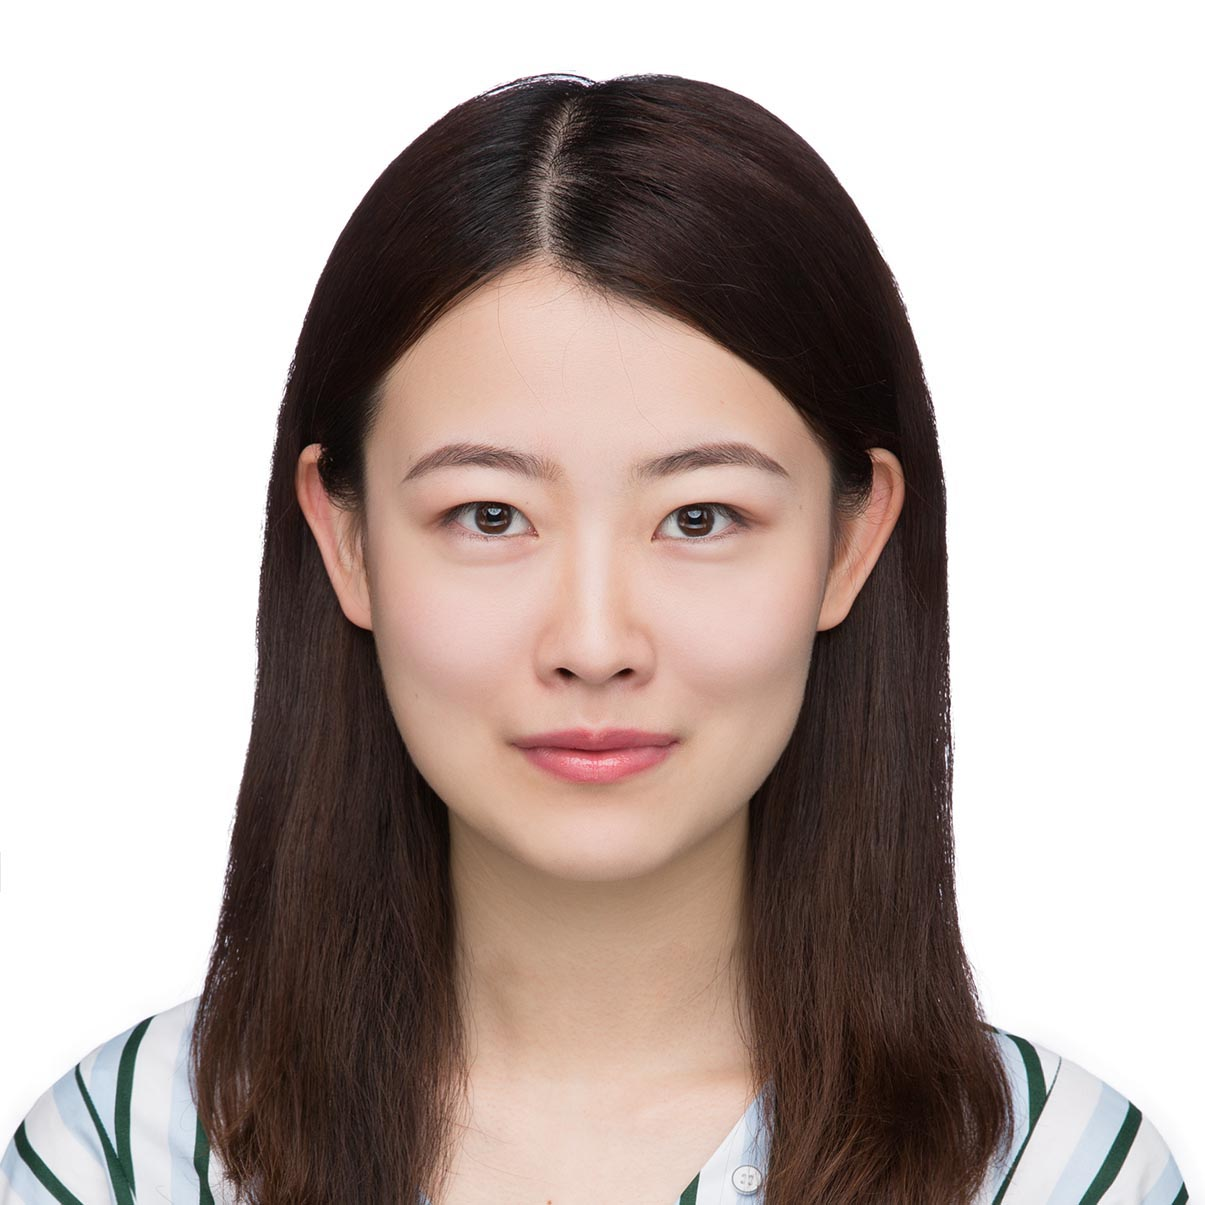 Headshot of Yusu Qian